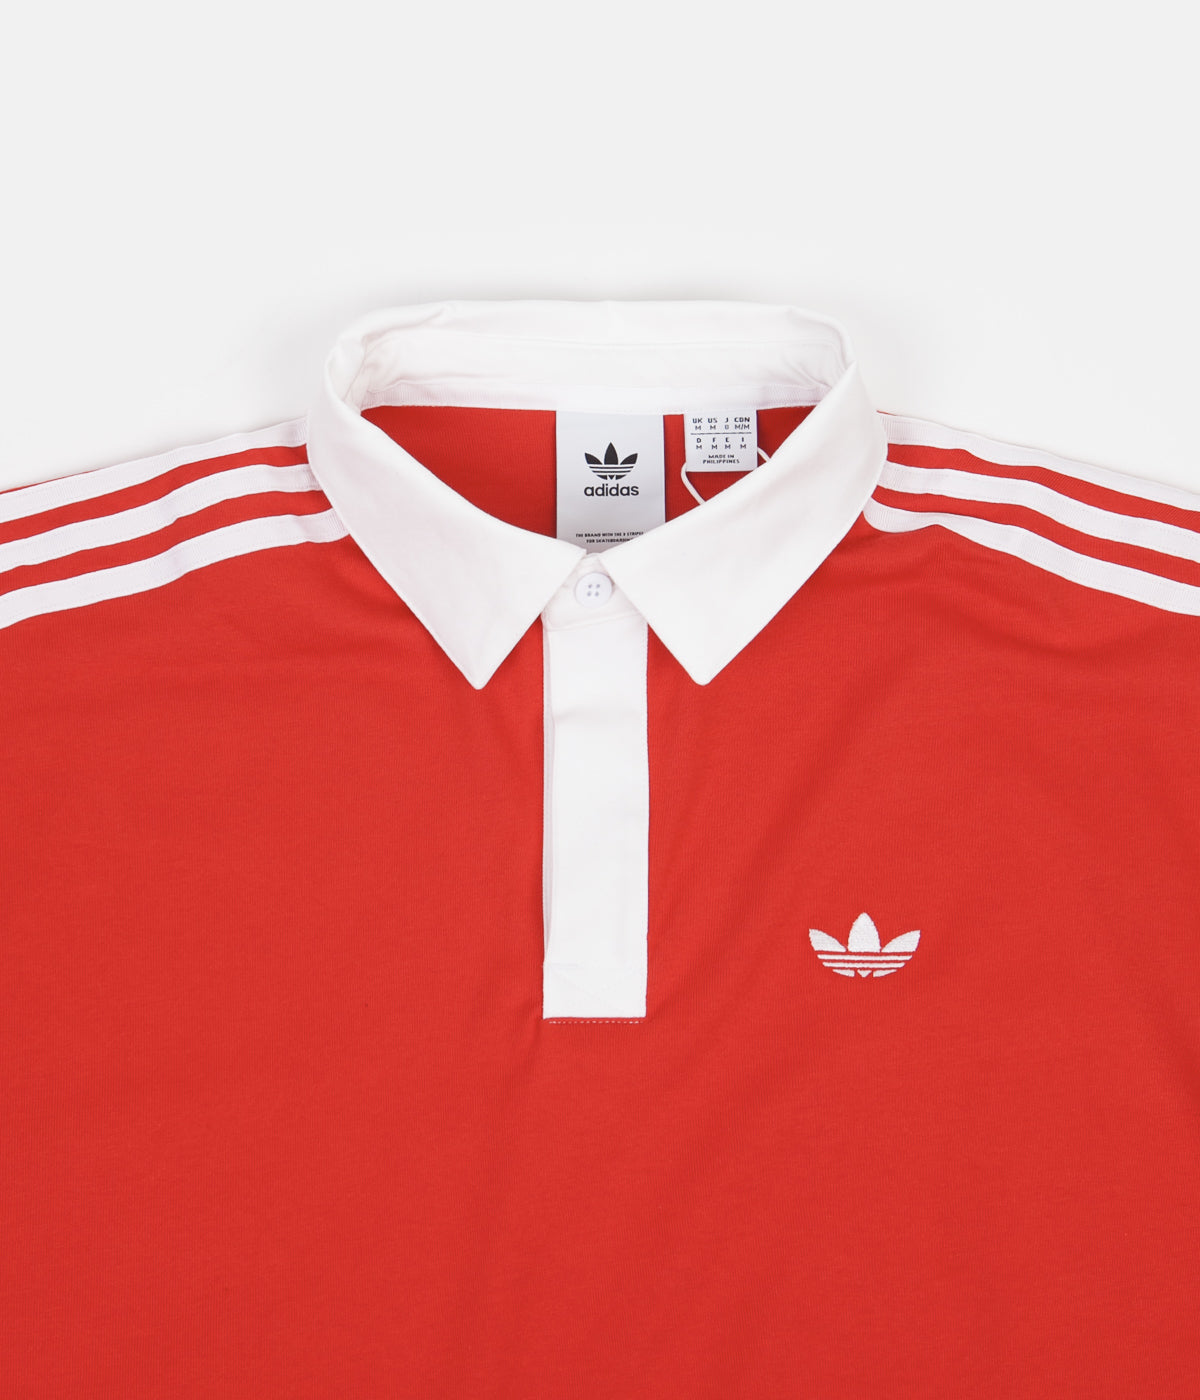 Adidas Solid Rugby Shirt - Vivid Red / White   Flatspot